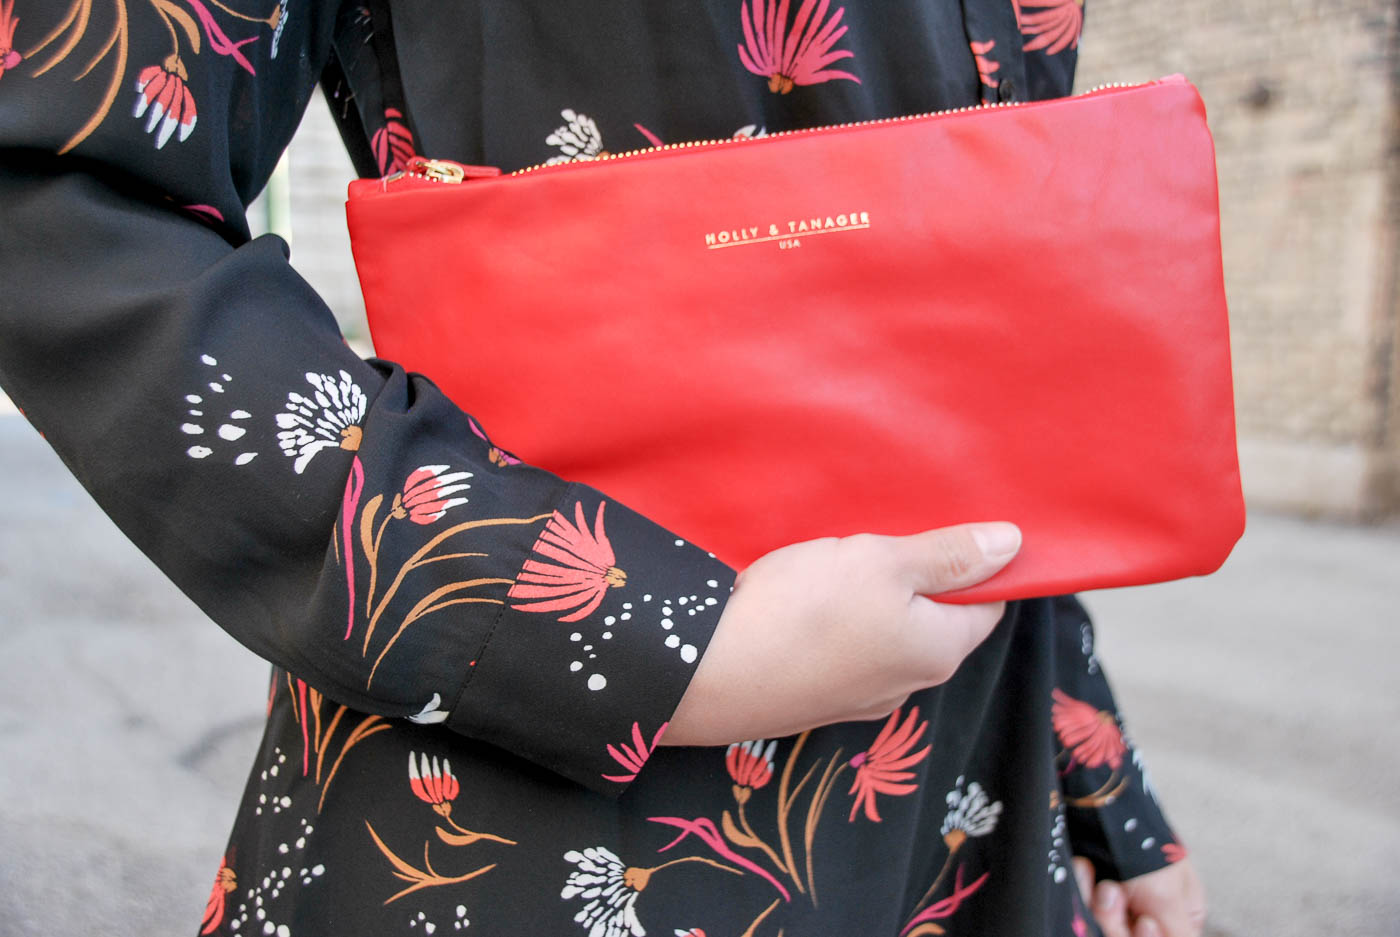 Holly & Tanager Clutch Handbag in Poppy Red